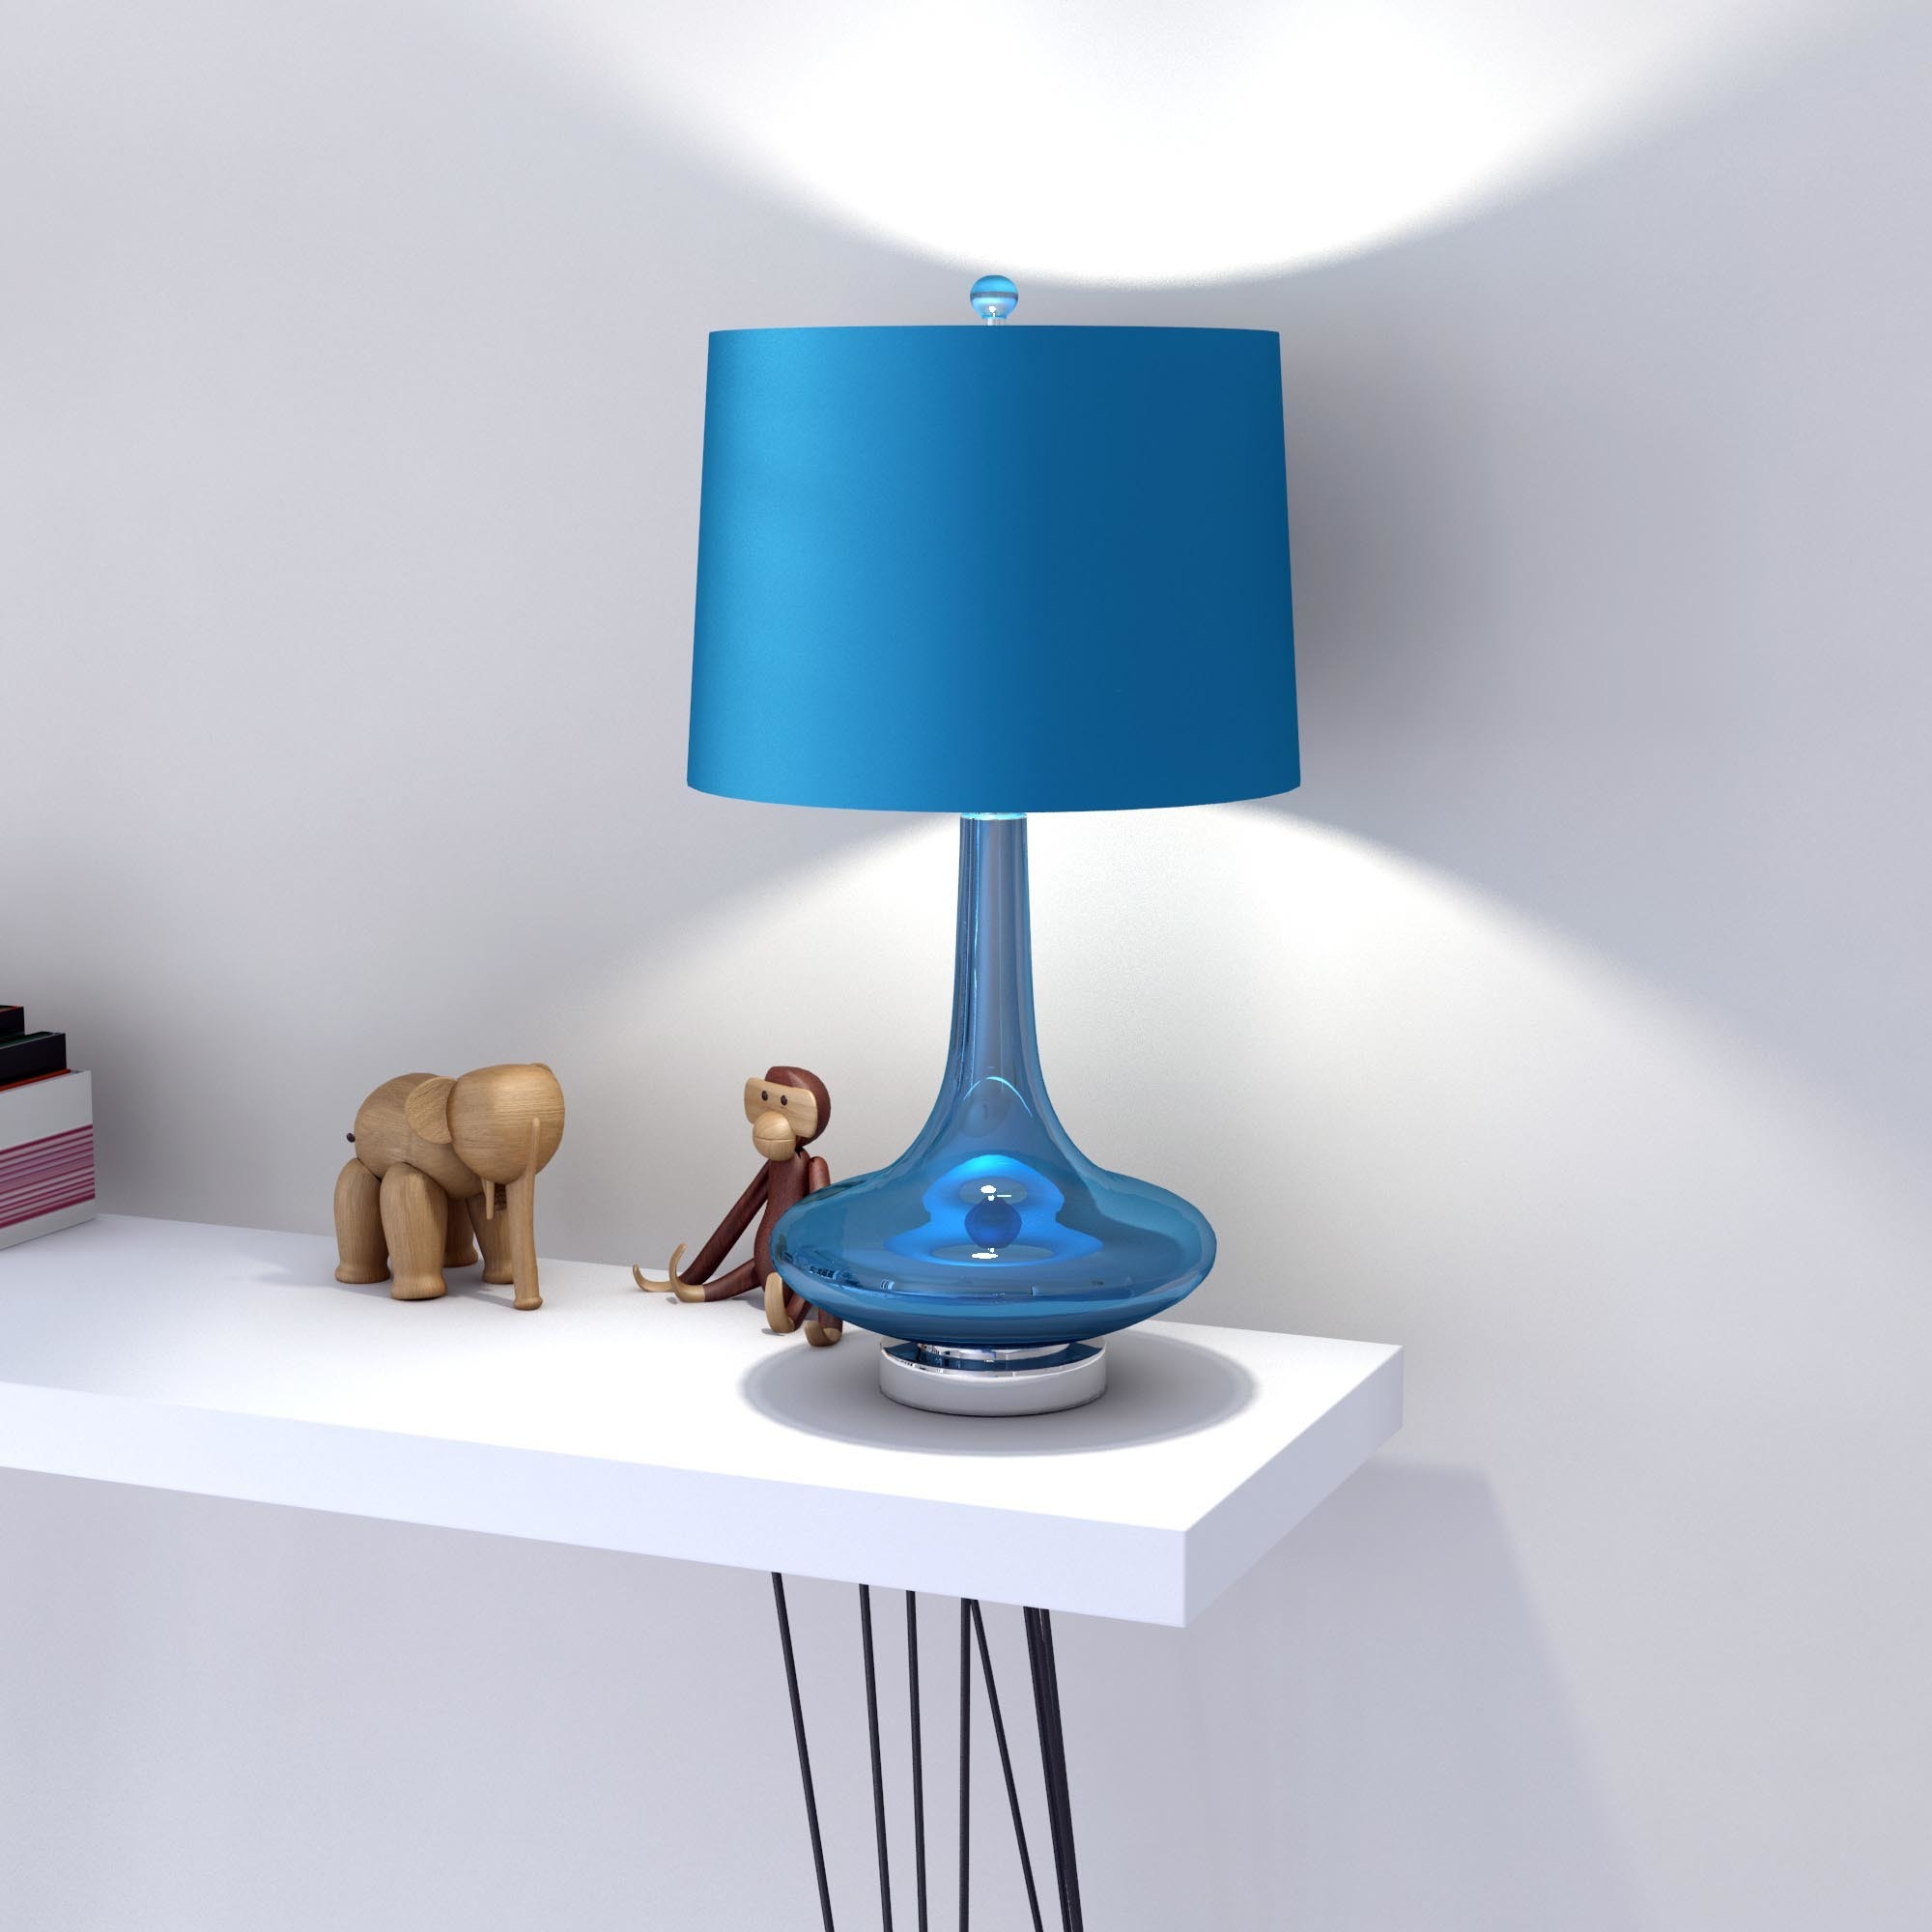 outstanding teal accent table lamp tiffany red target john ideas dunelm torchiere touch classic shades cordless led black wilko lamps battery drawing design bedsi habitat lewis